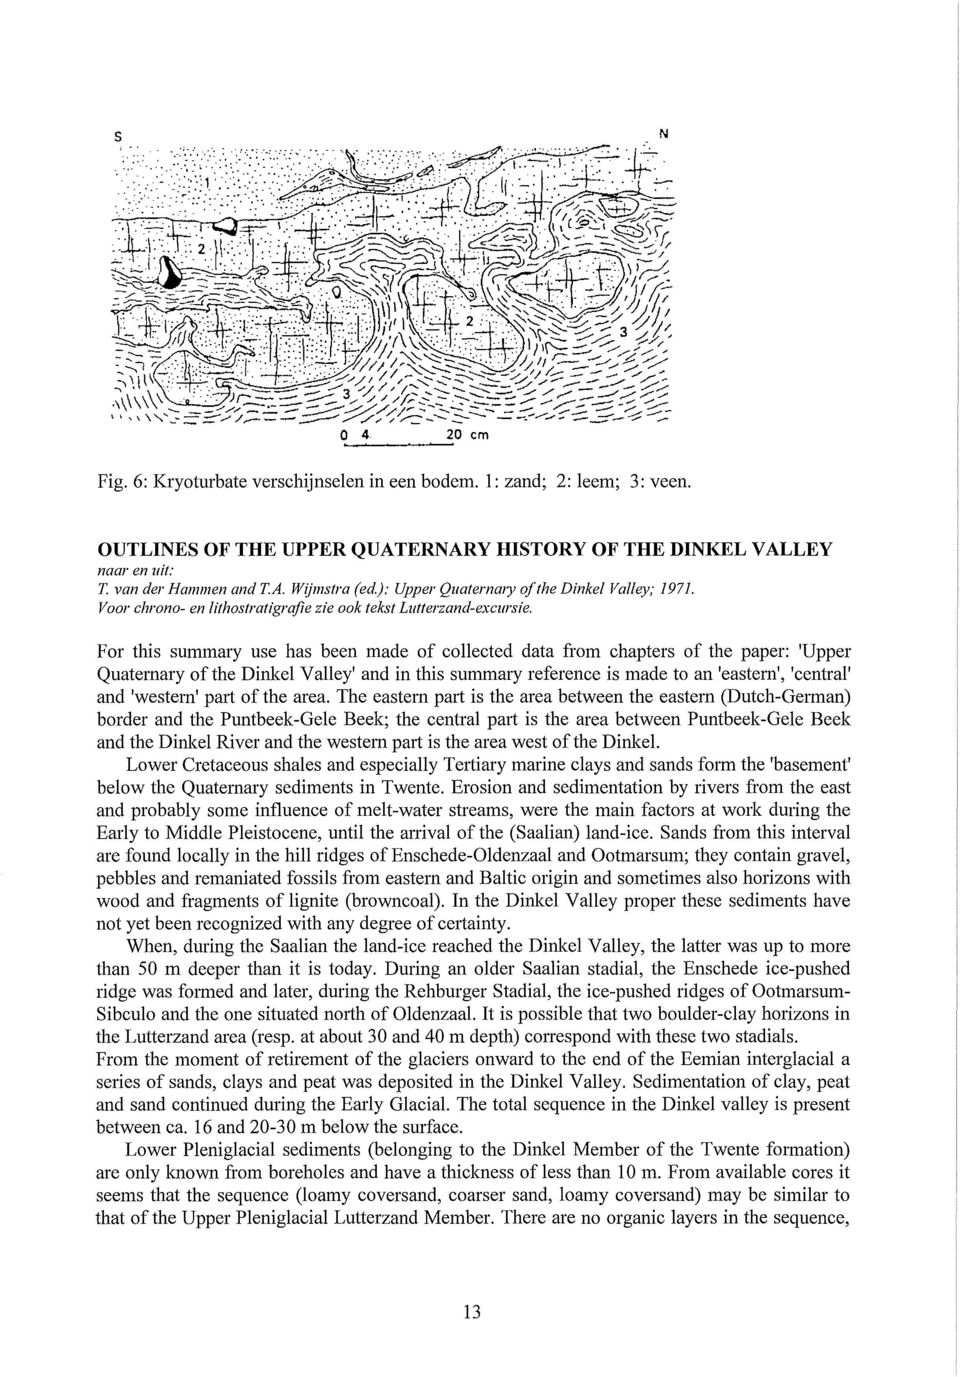 For this summary use has been made of collected data from chapters of the paper: 'Upper Quaternary ofthe Dinkei Valley' and in this summary reference is made to an 'eastern', 'centra!